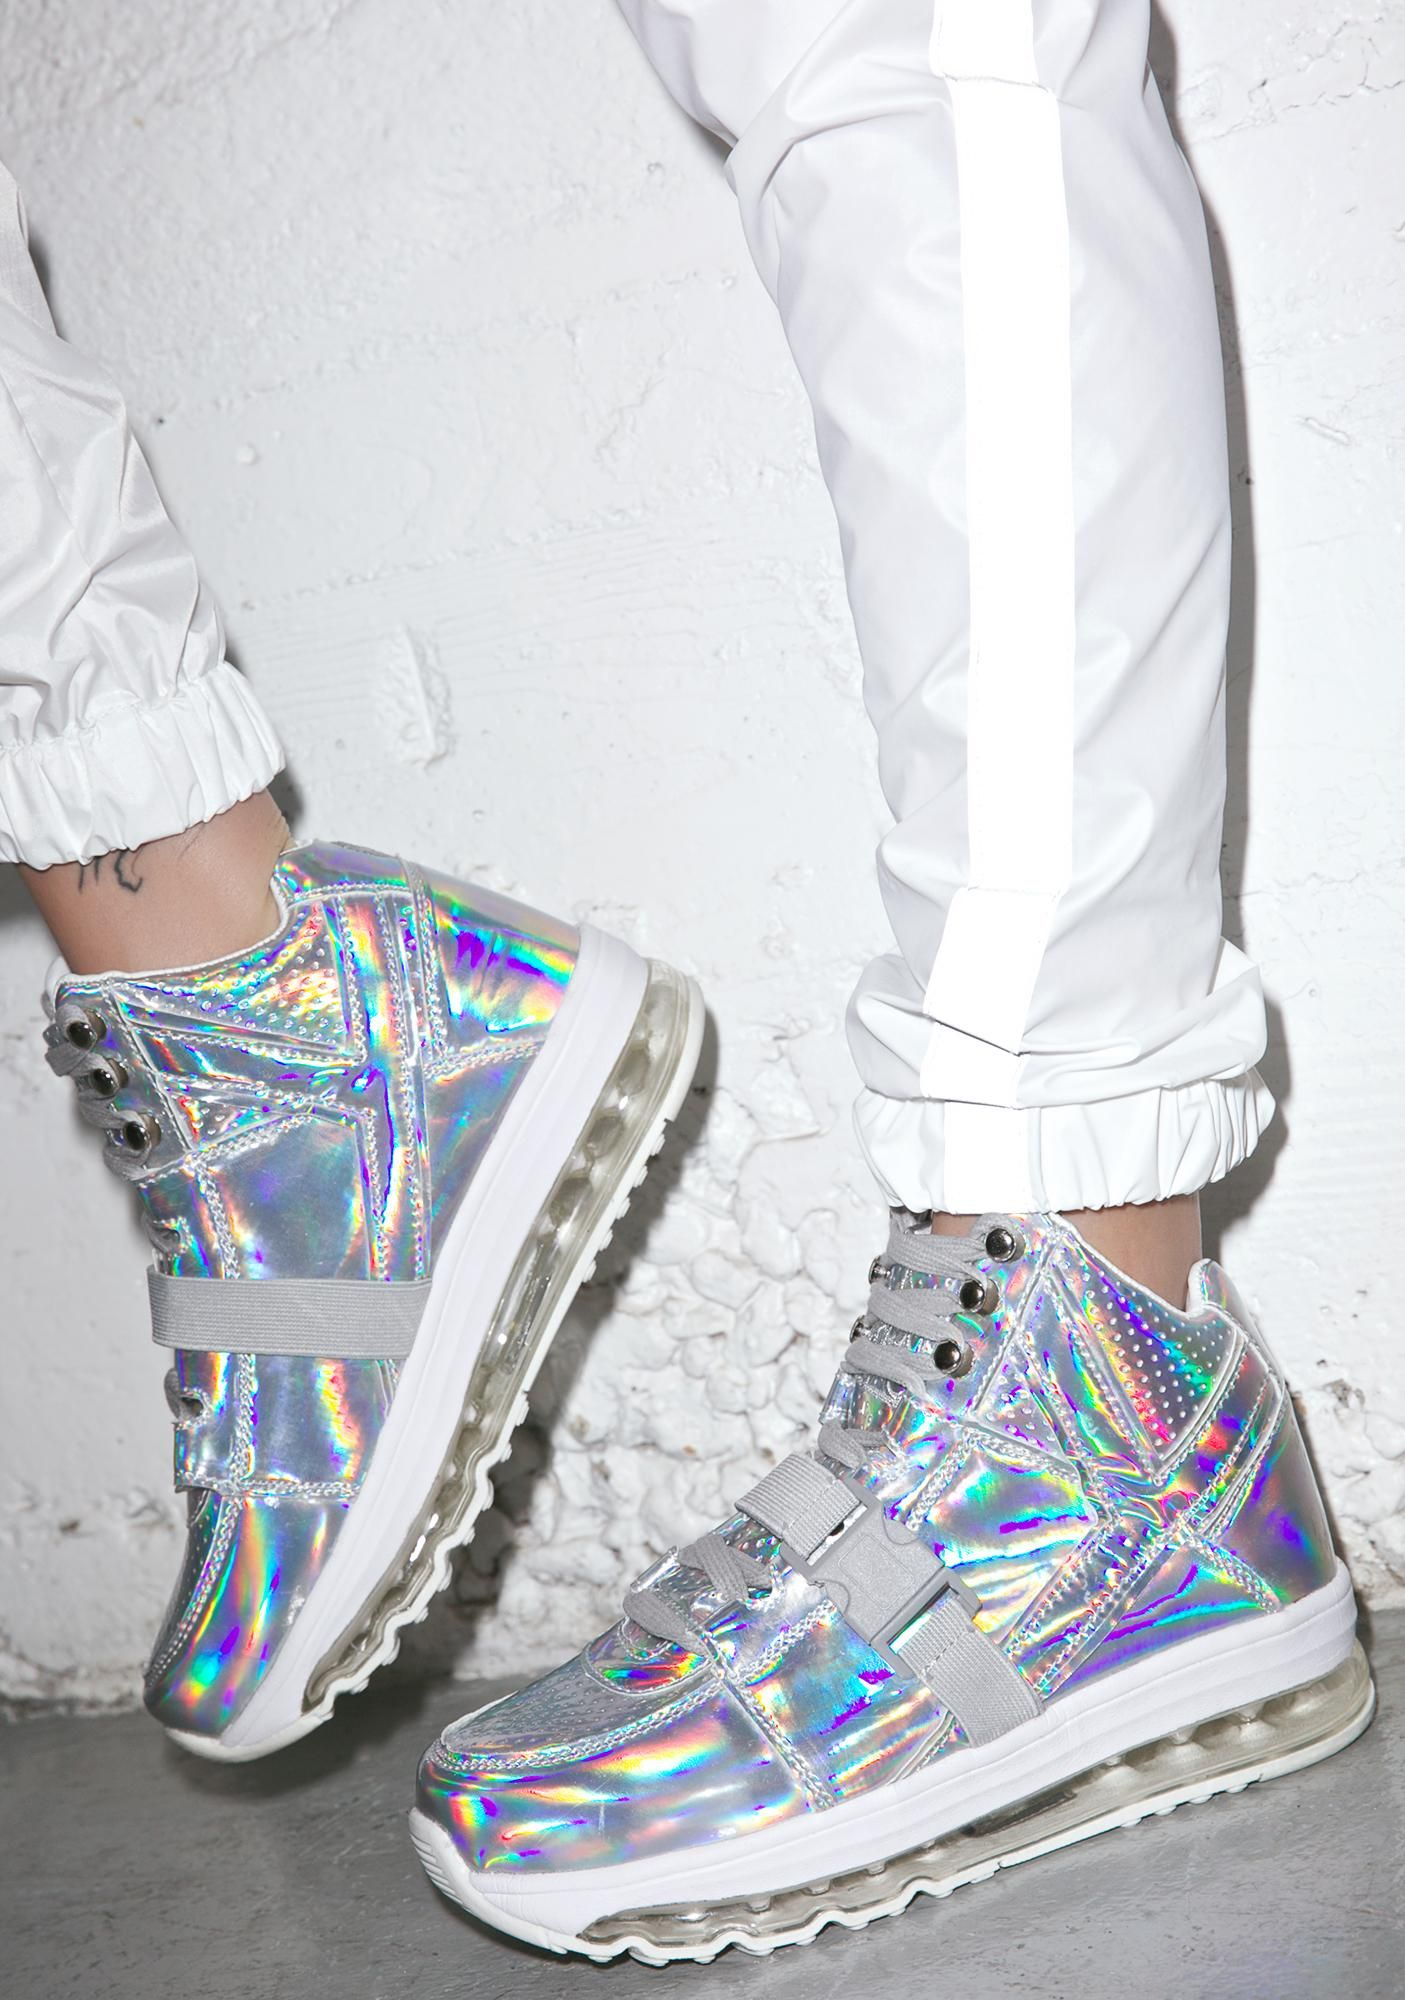 Qozmo Aiire Light Up Hologram Sneakers Shoes Shoes